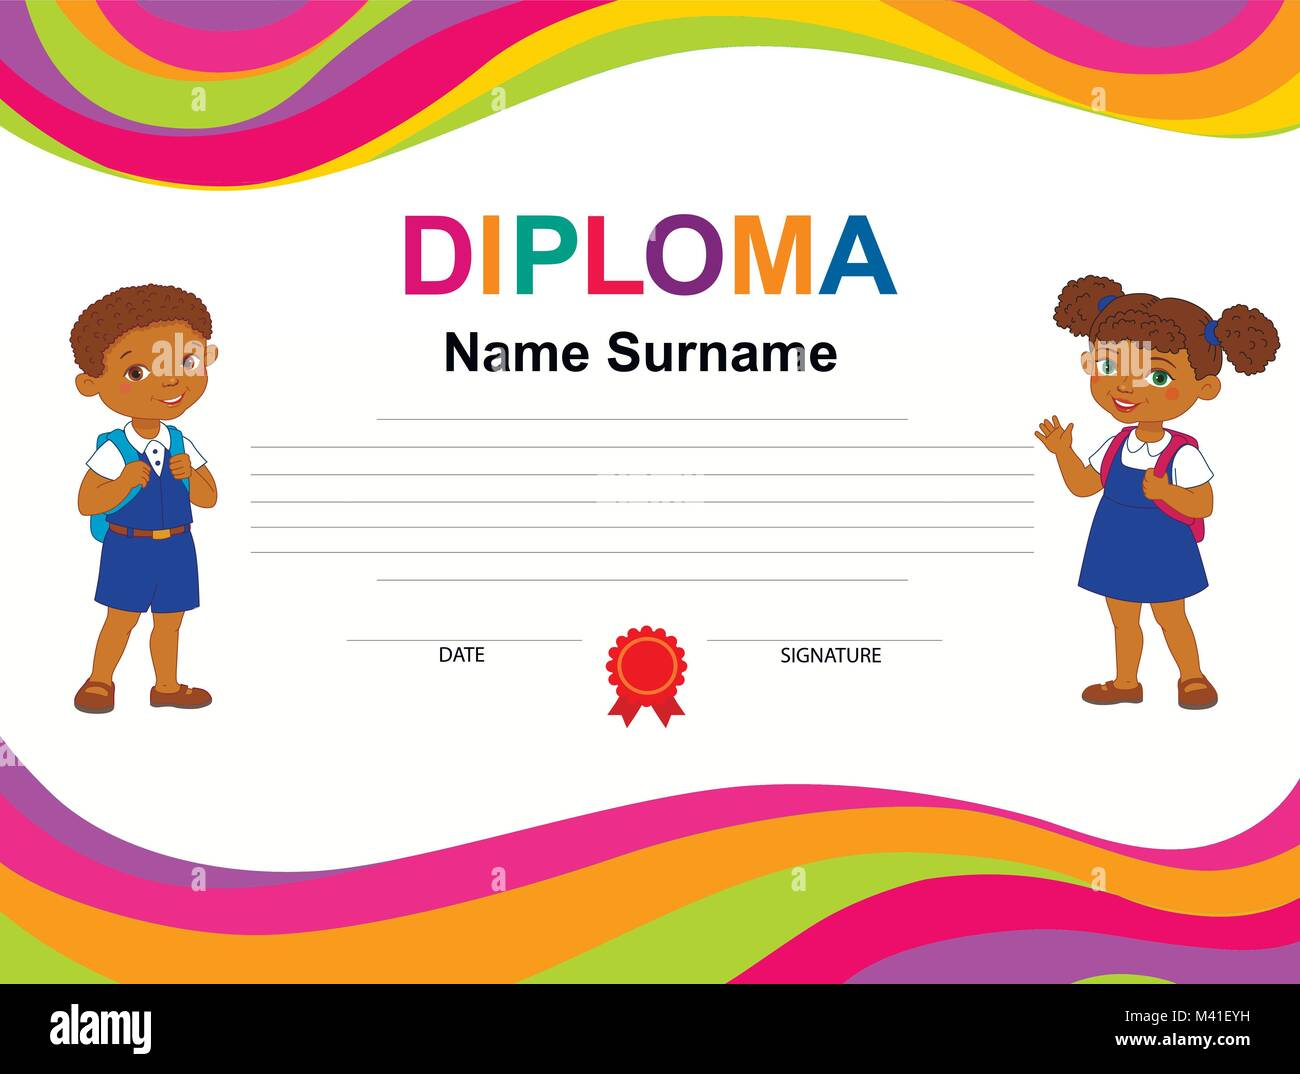 kids diploma certificate background design template stock vector art